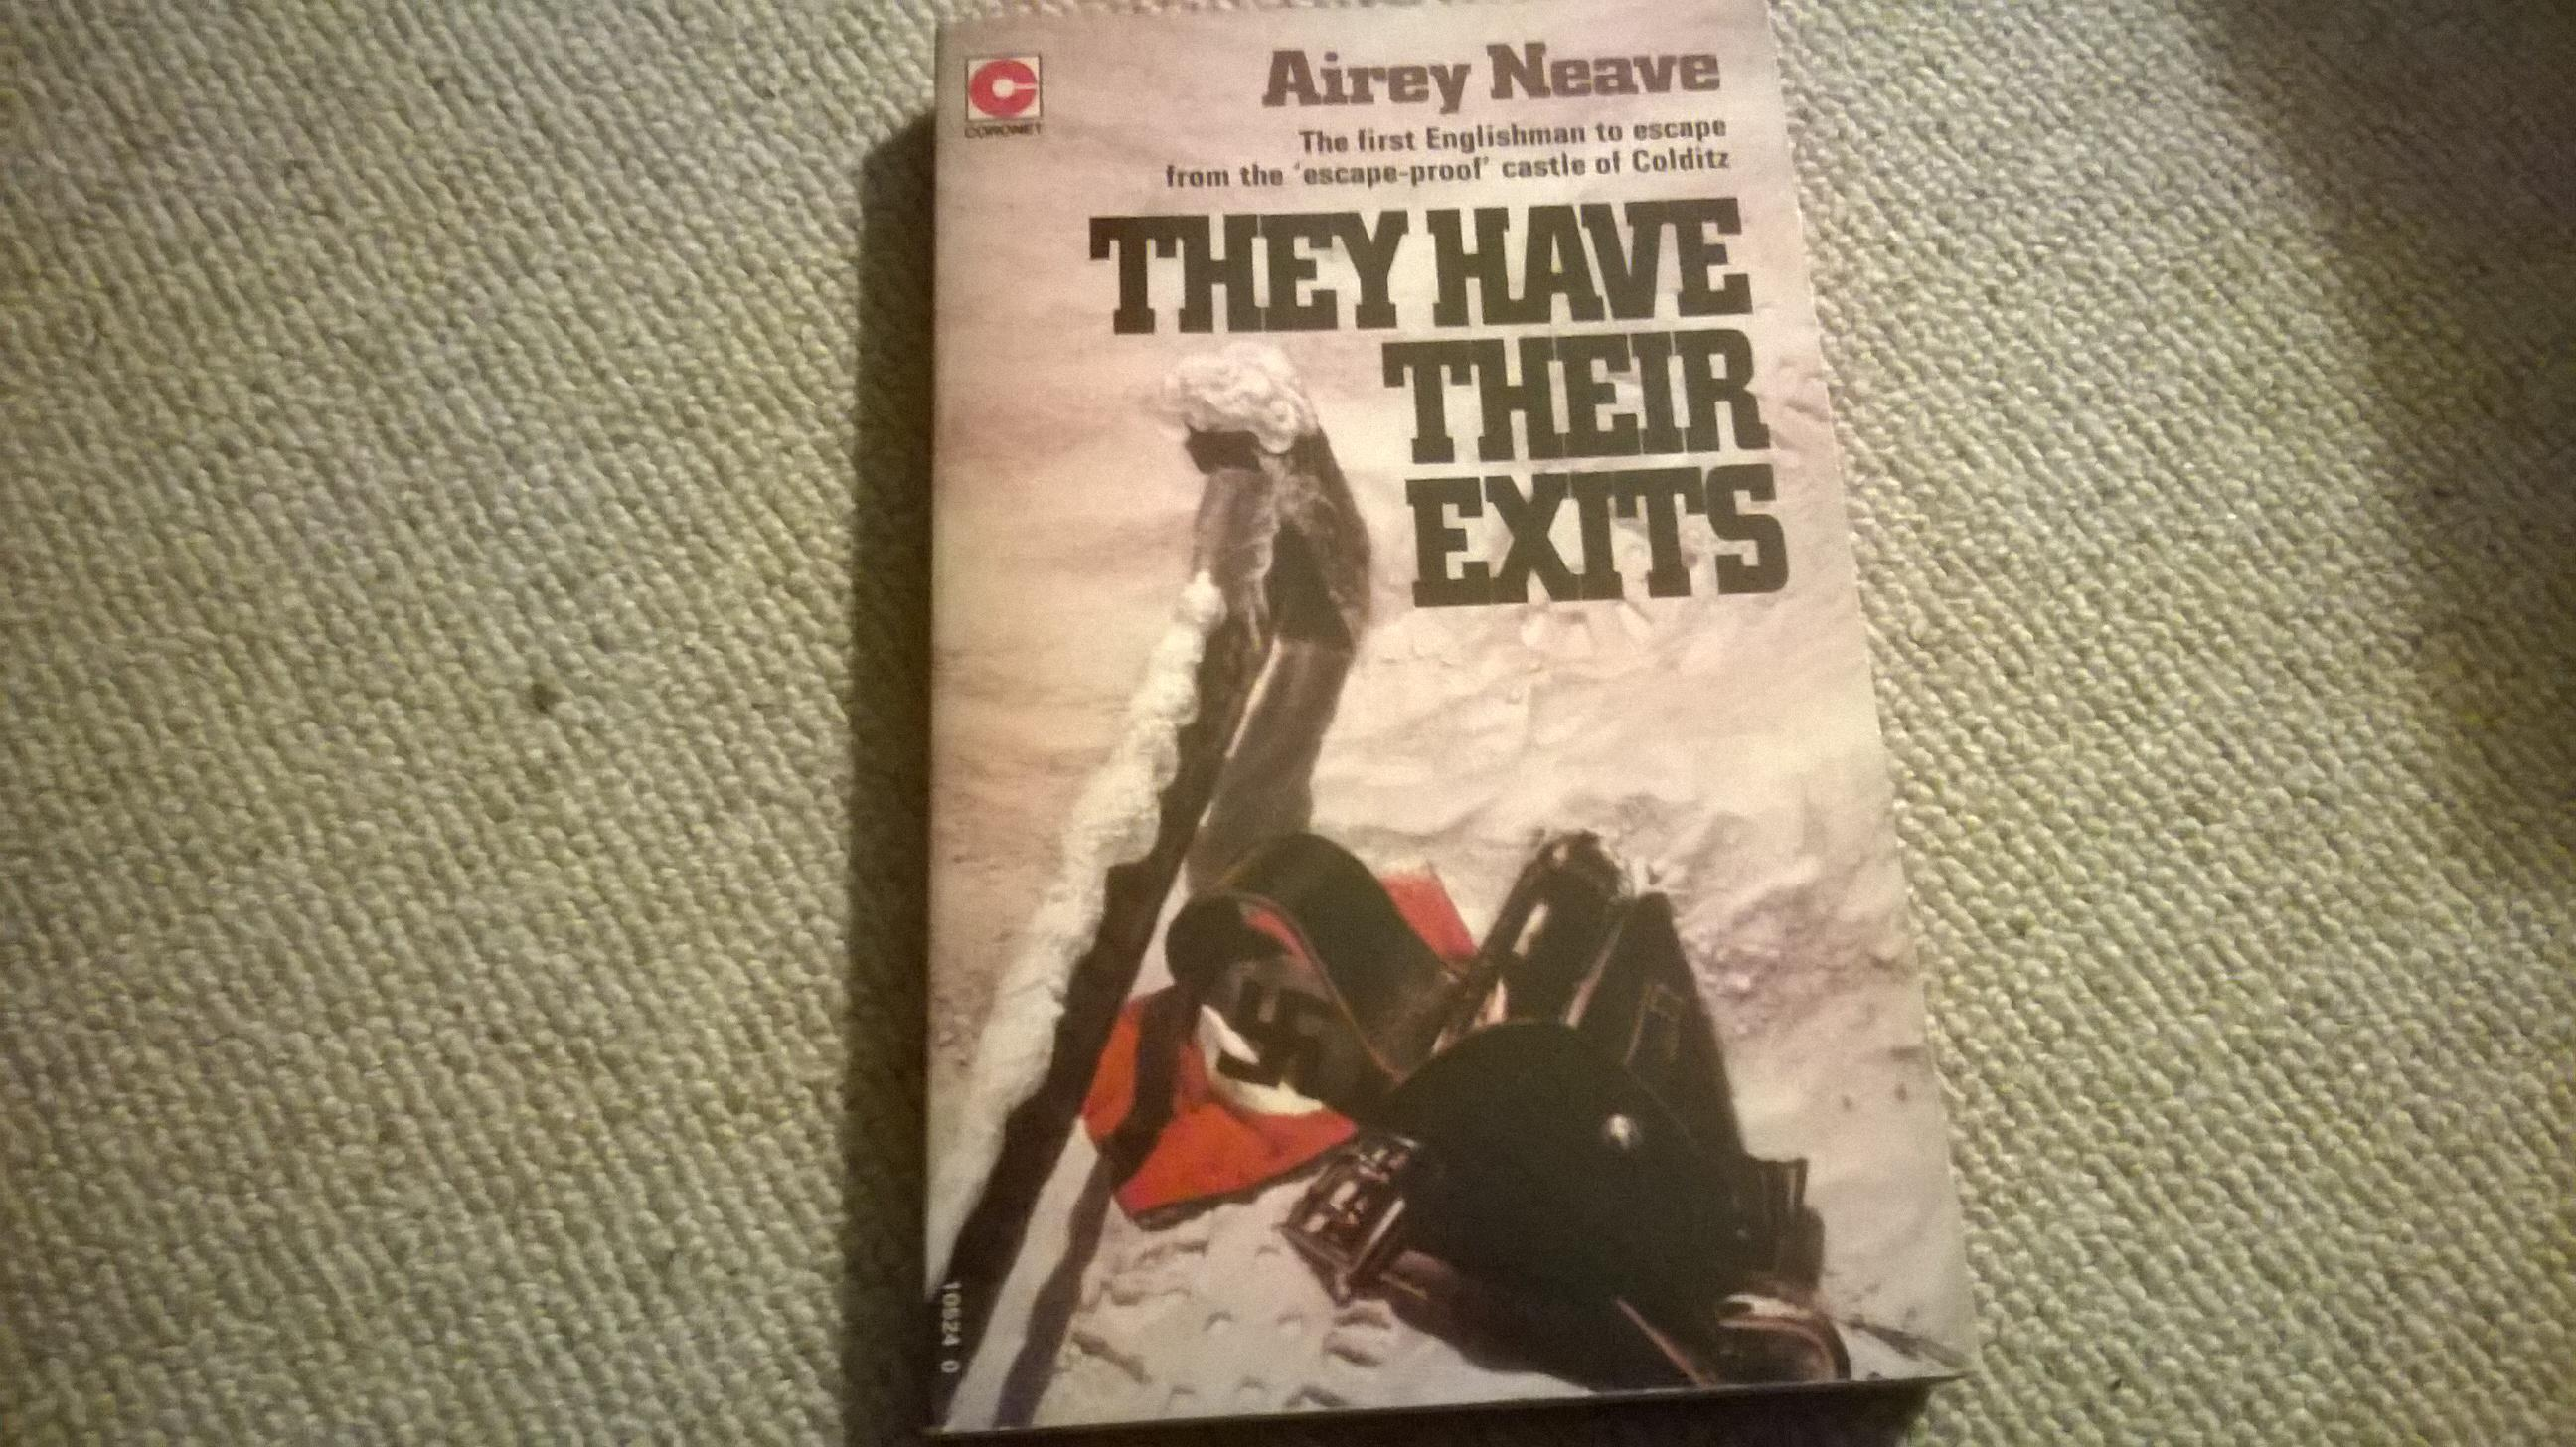 they have their exits neave airey